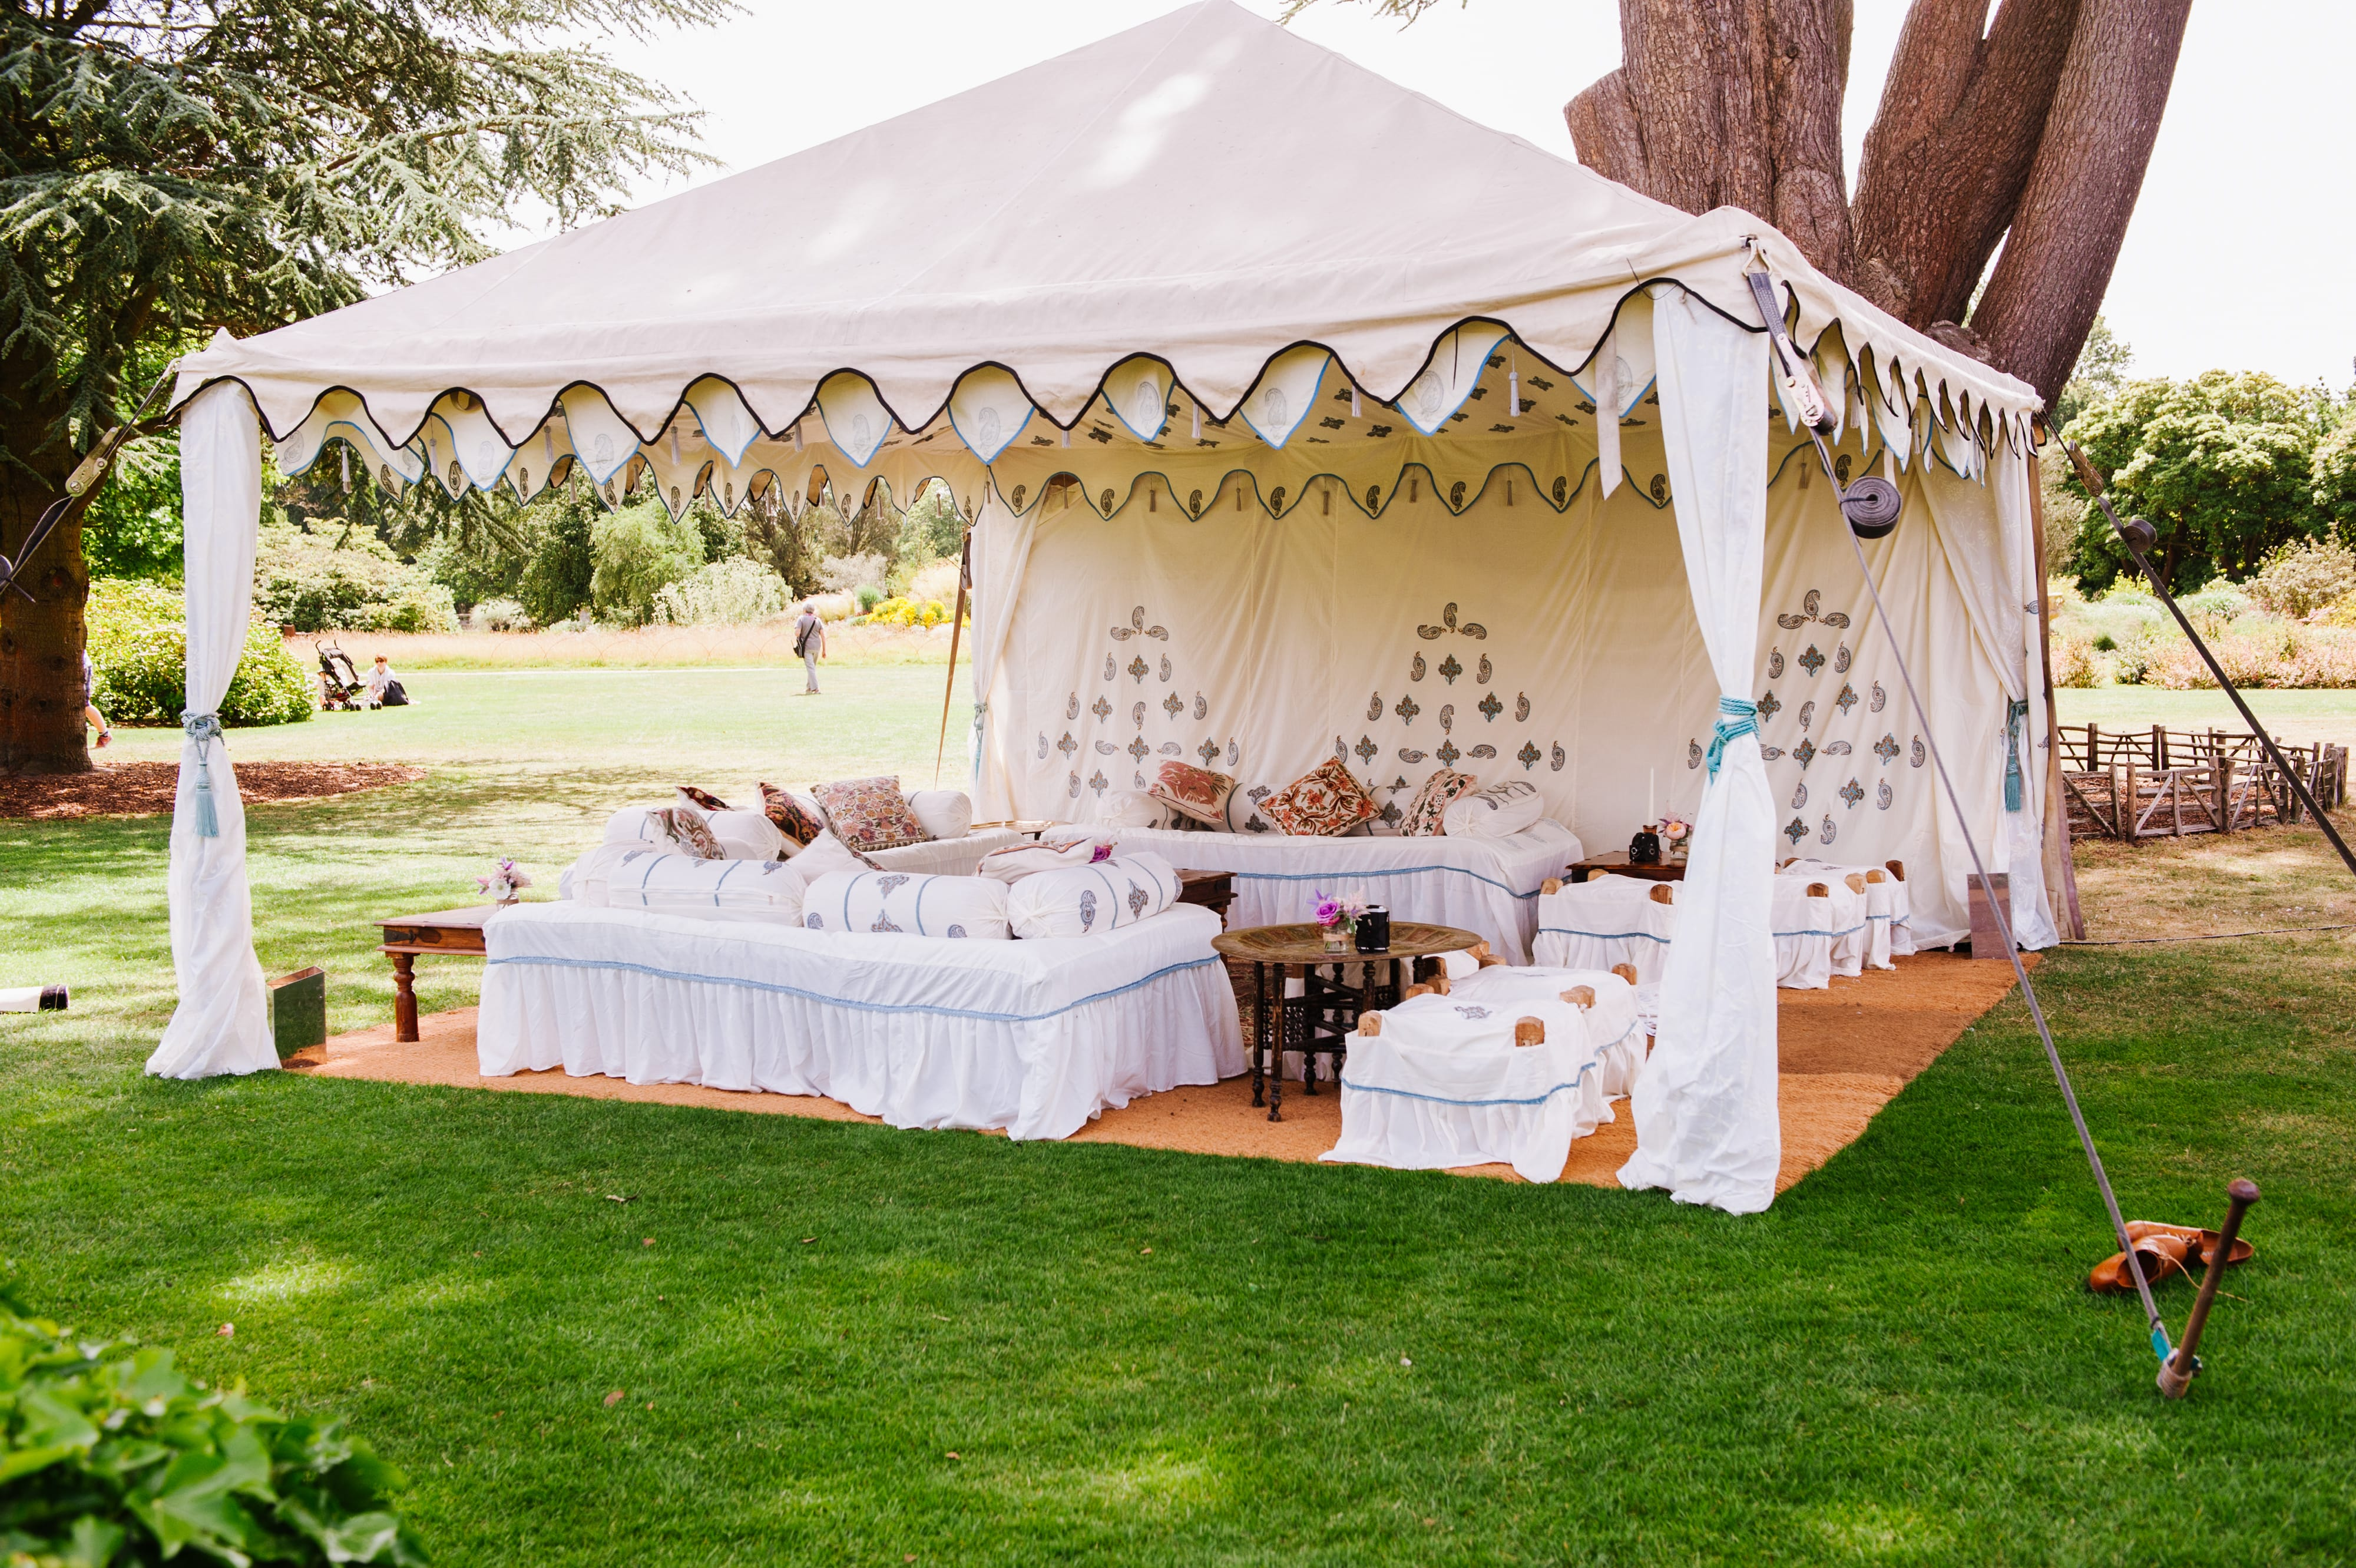 Save & Marquee Hire in Surrey - The Arabian Tent Company